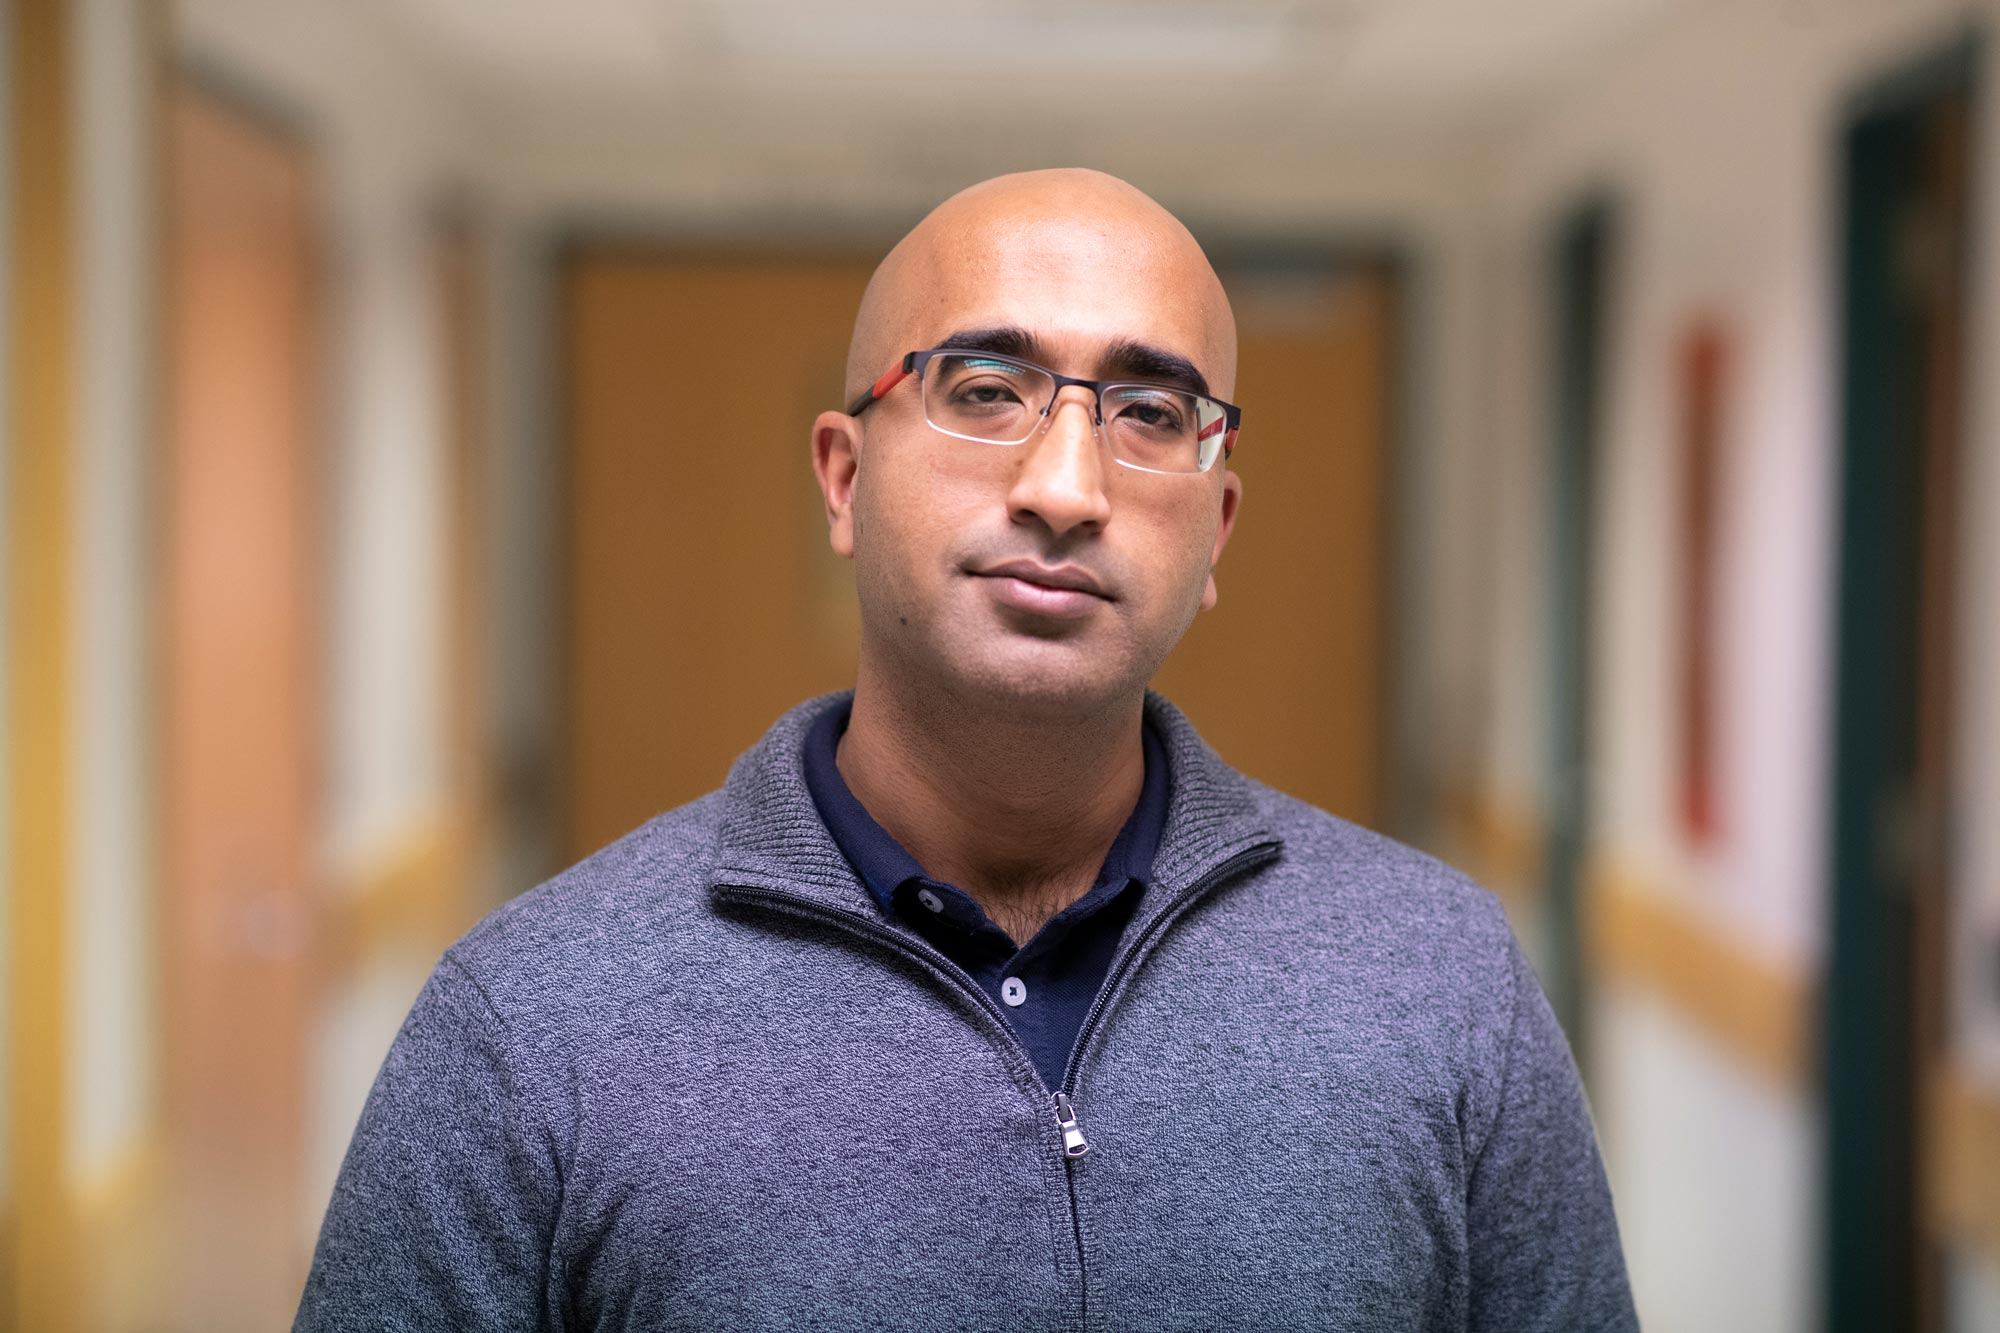 School of Medicine researcher Aakrosh Ratan said the study will boost scientific knowledge about medical genetics – and help understand human migrations and origins.